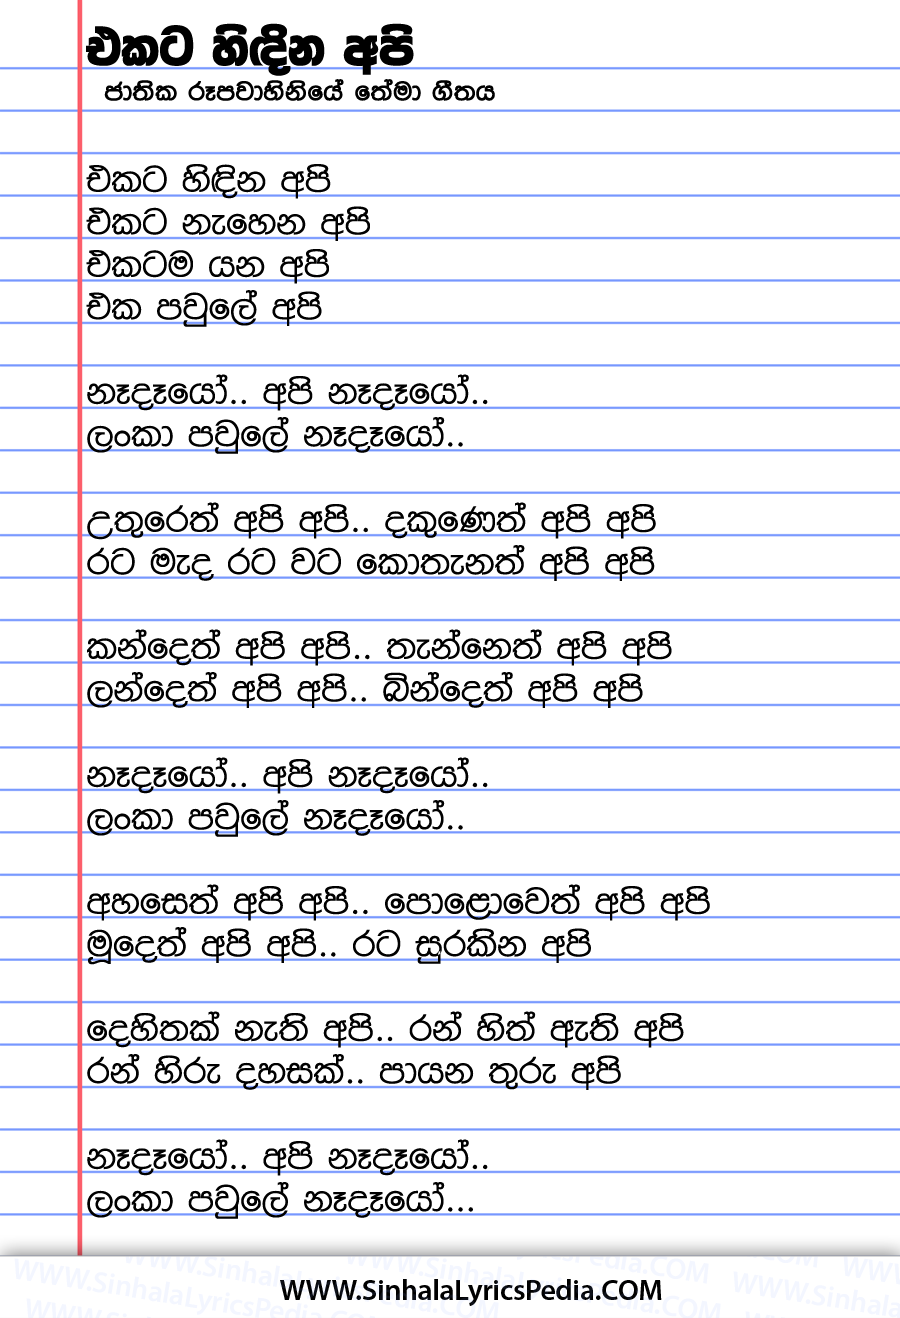 Ekata Hidina Api (Jathika Rupavahini Theme Song) Song Lyrics